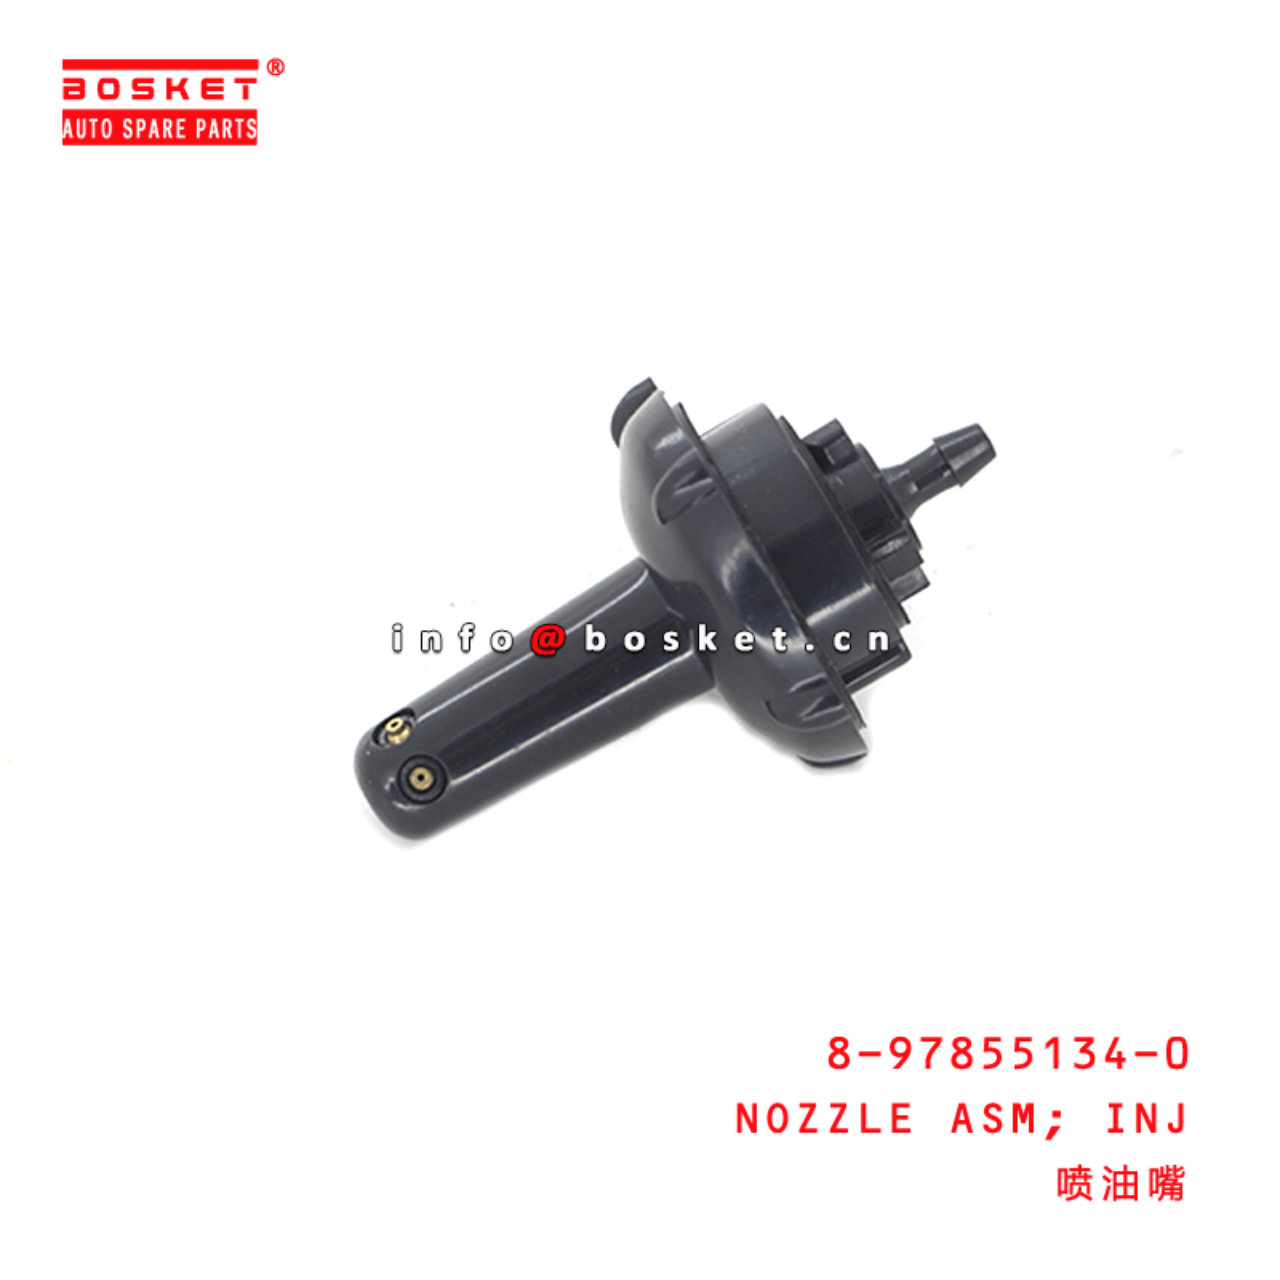 8-97855134-0 Injection Nozzle Assembly 8978551340 Suitable for ISUZU 100P